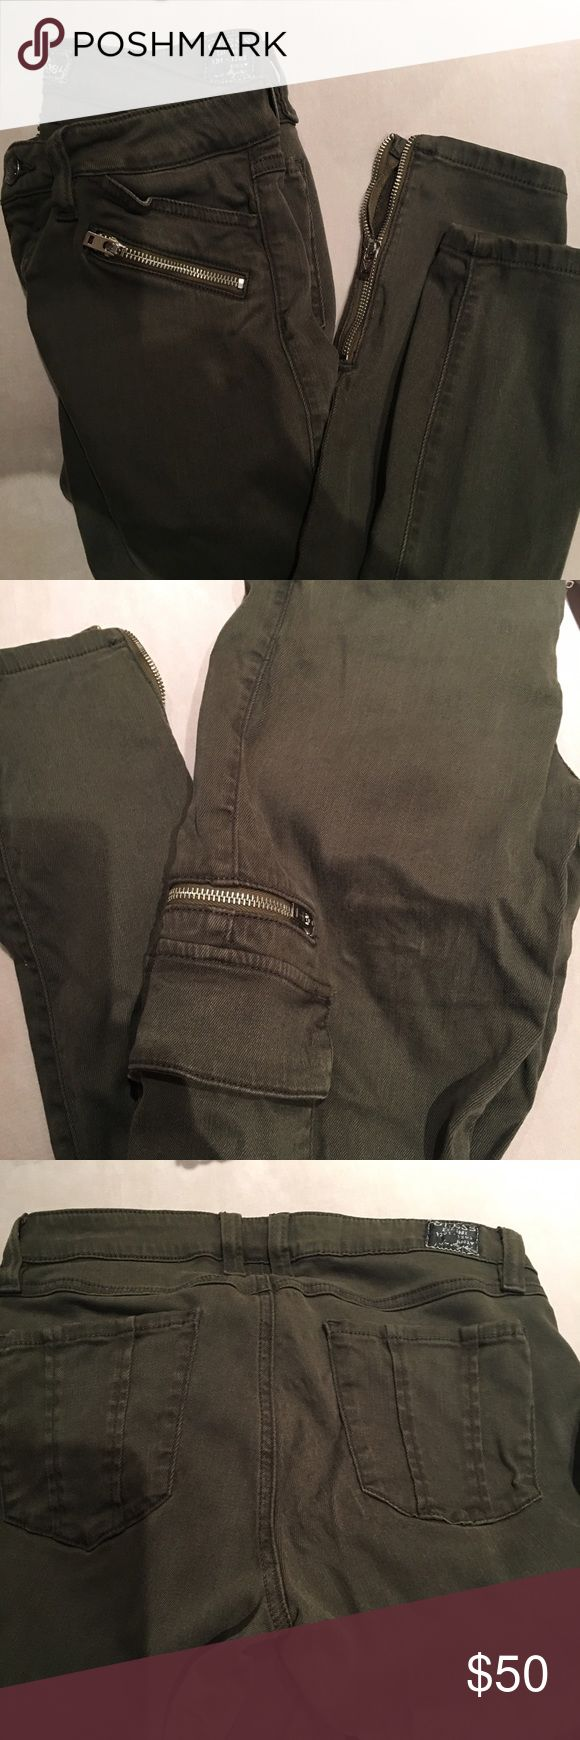 Guess Dusty Olive jeans with side pockets Excellent condition Guess Jeans Skinny